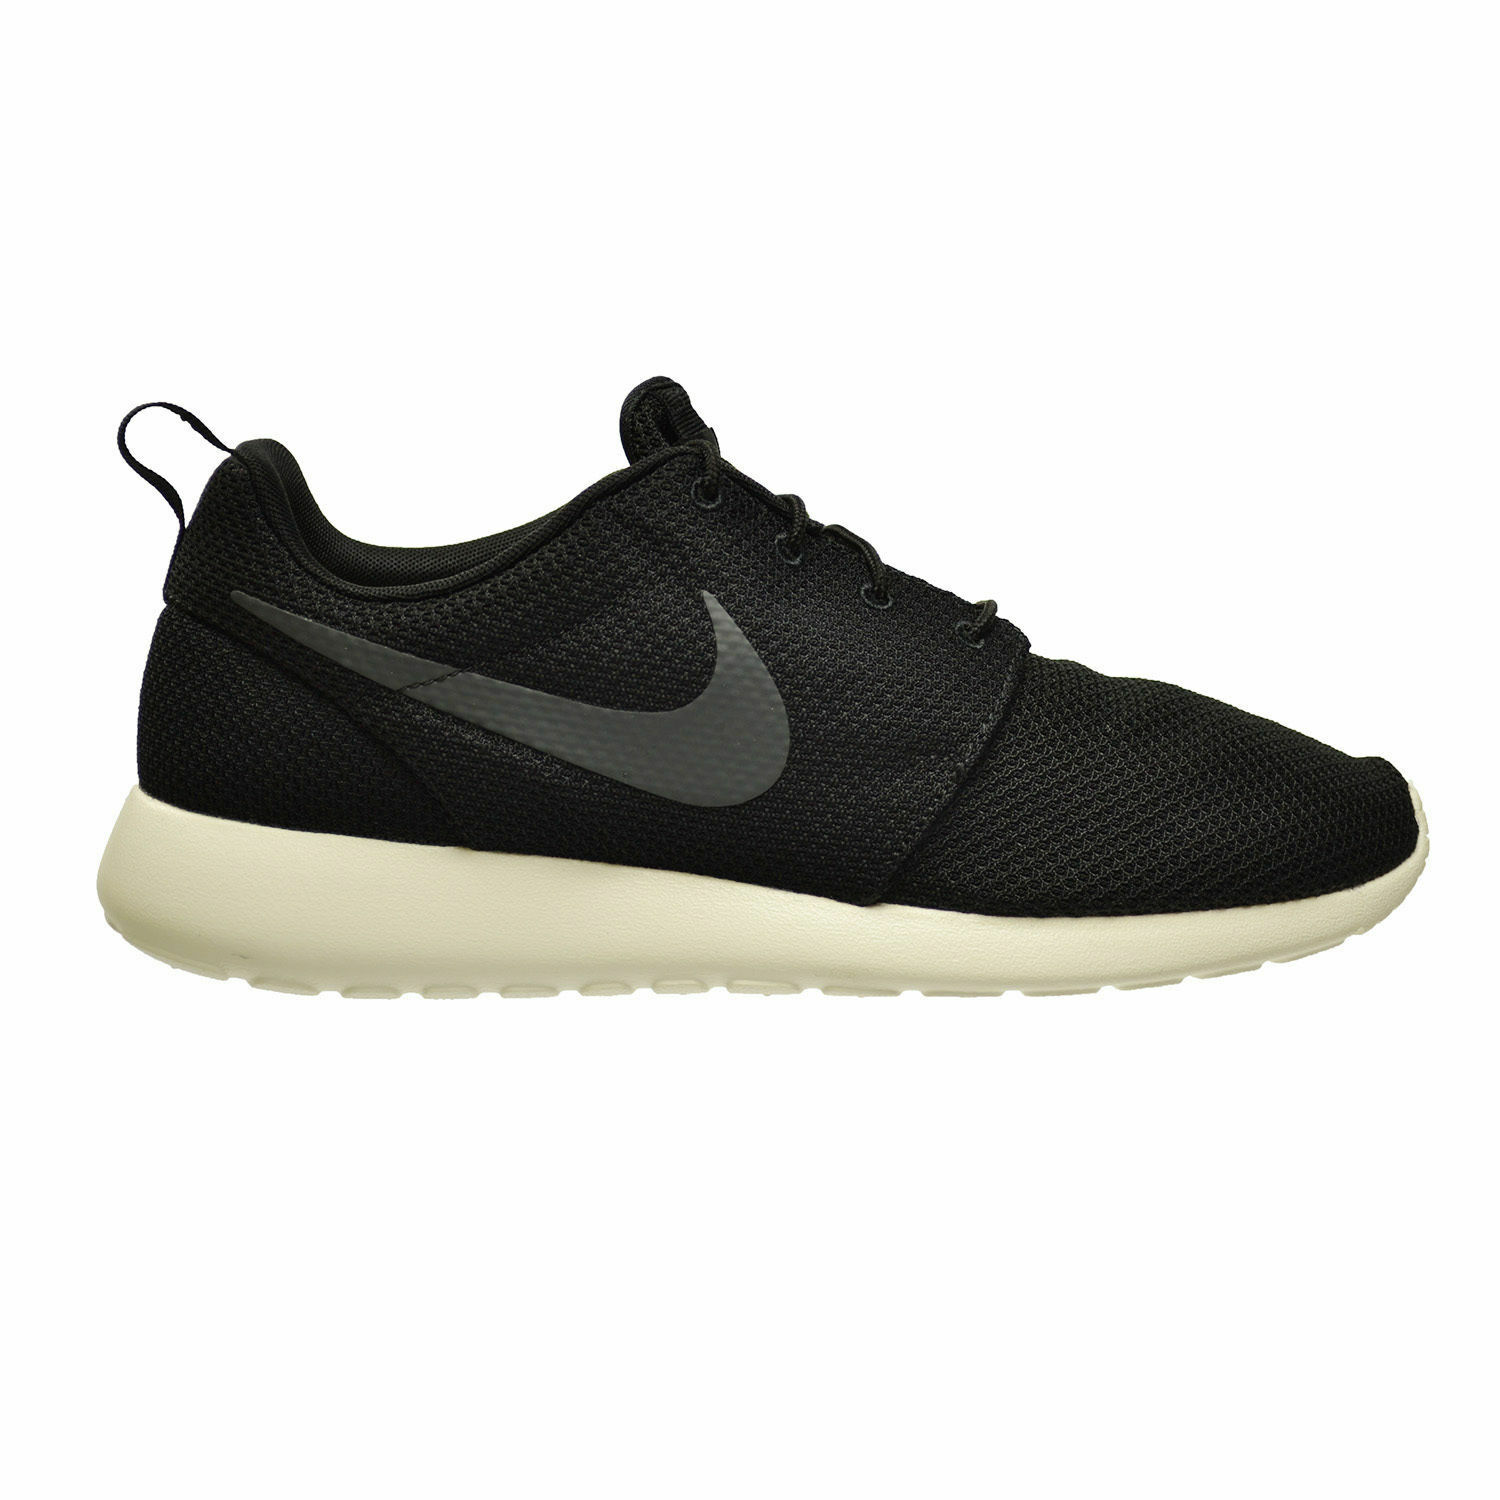 {511881-010} MEN'S NIKE ROSHE ONE RUNNING SHOES BLACK WHITE New